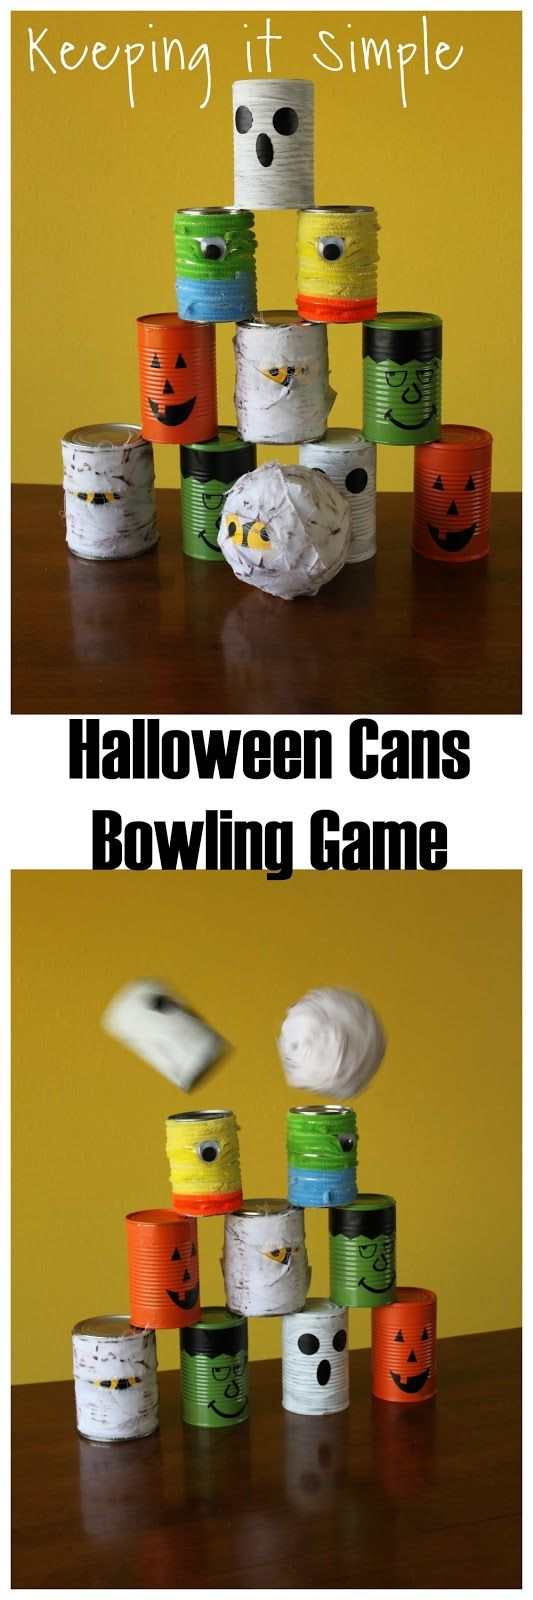 Best 25+ Halloween cans ideas only on Pinterest | Class halloween ...